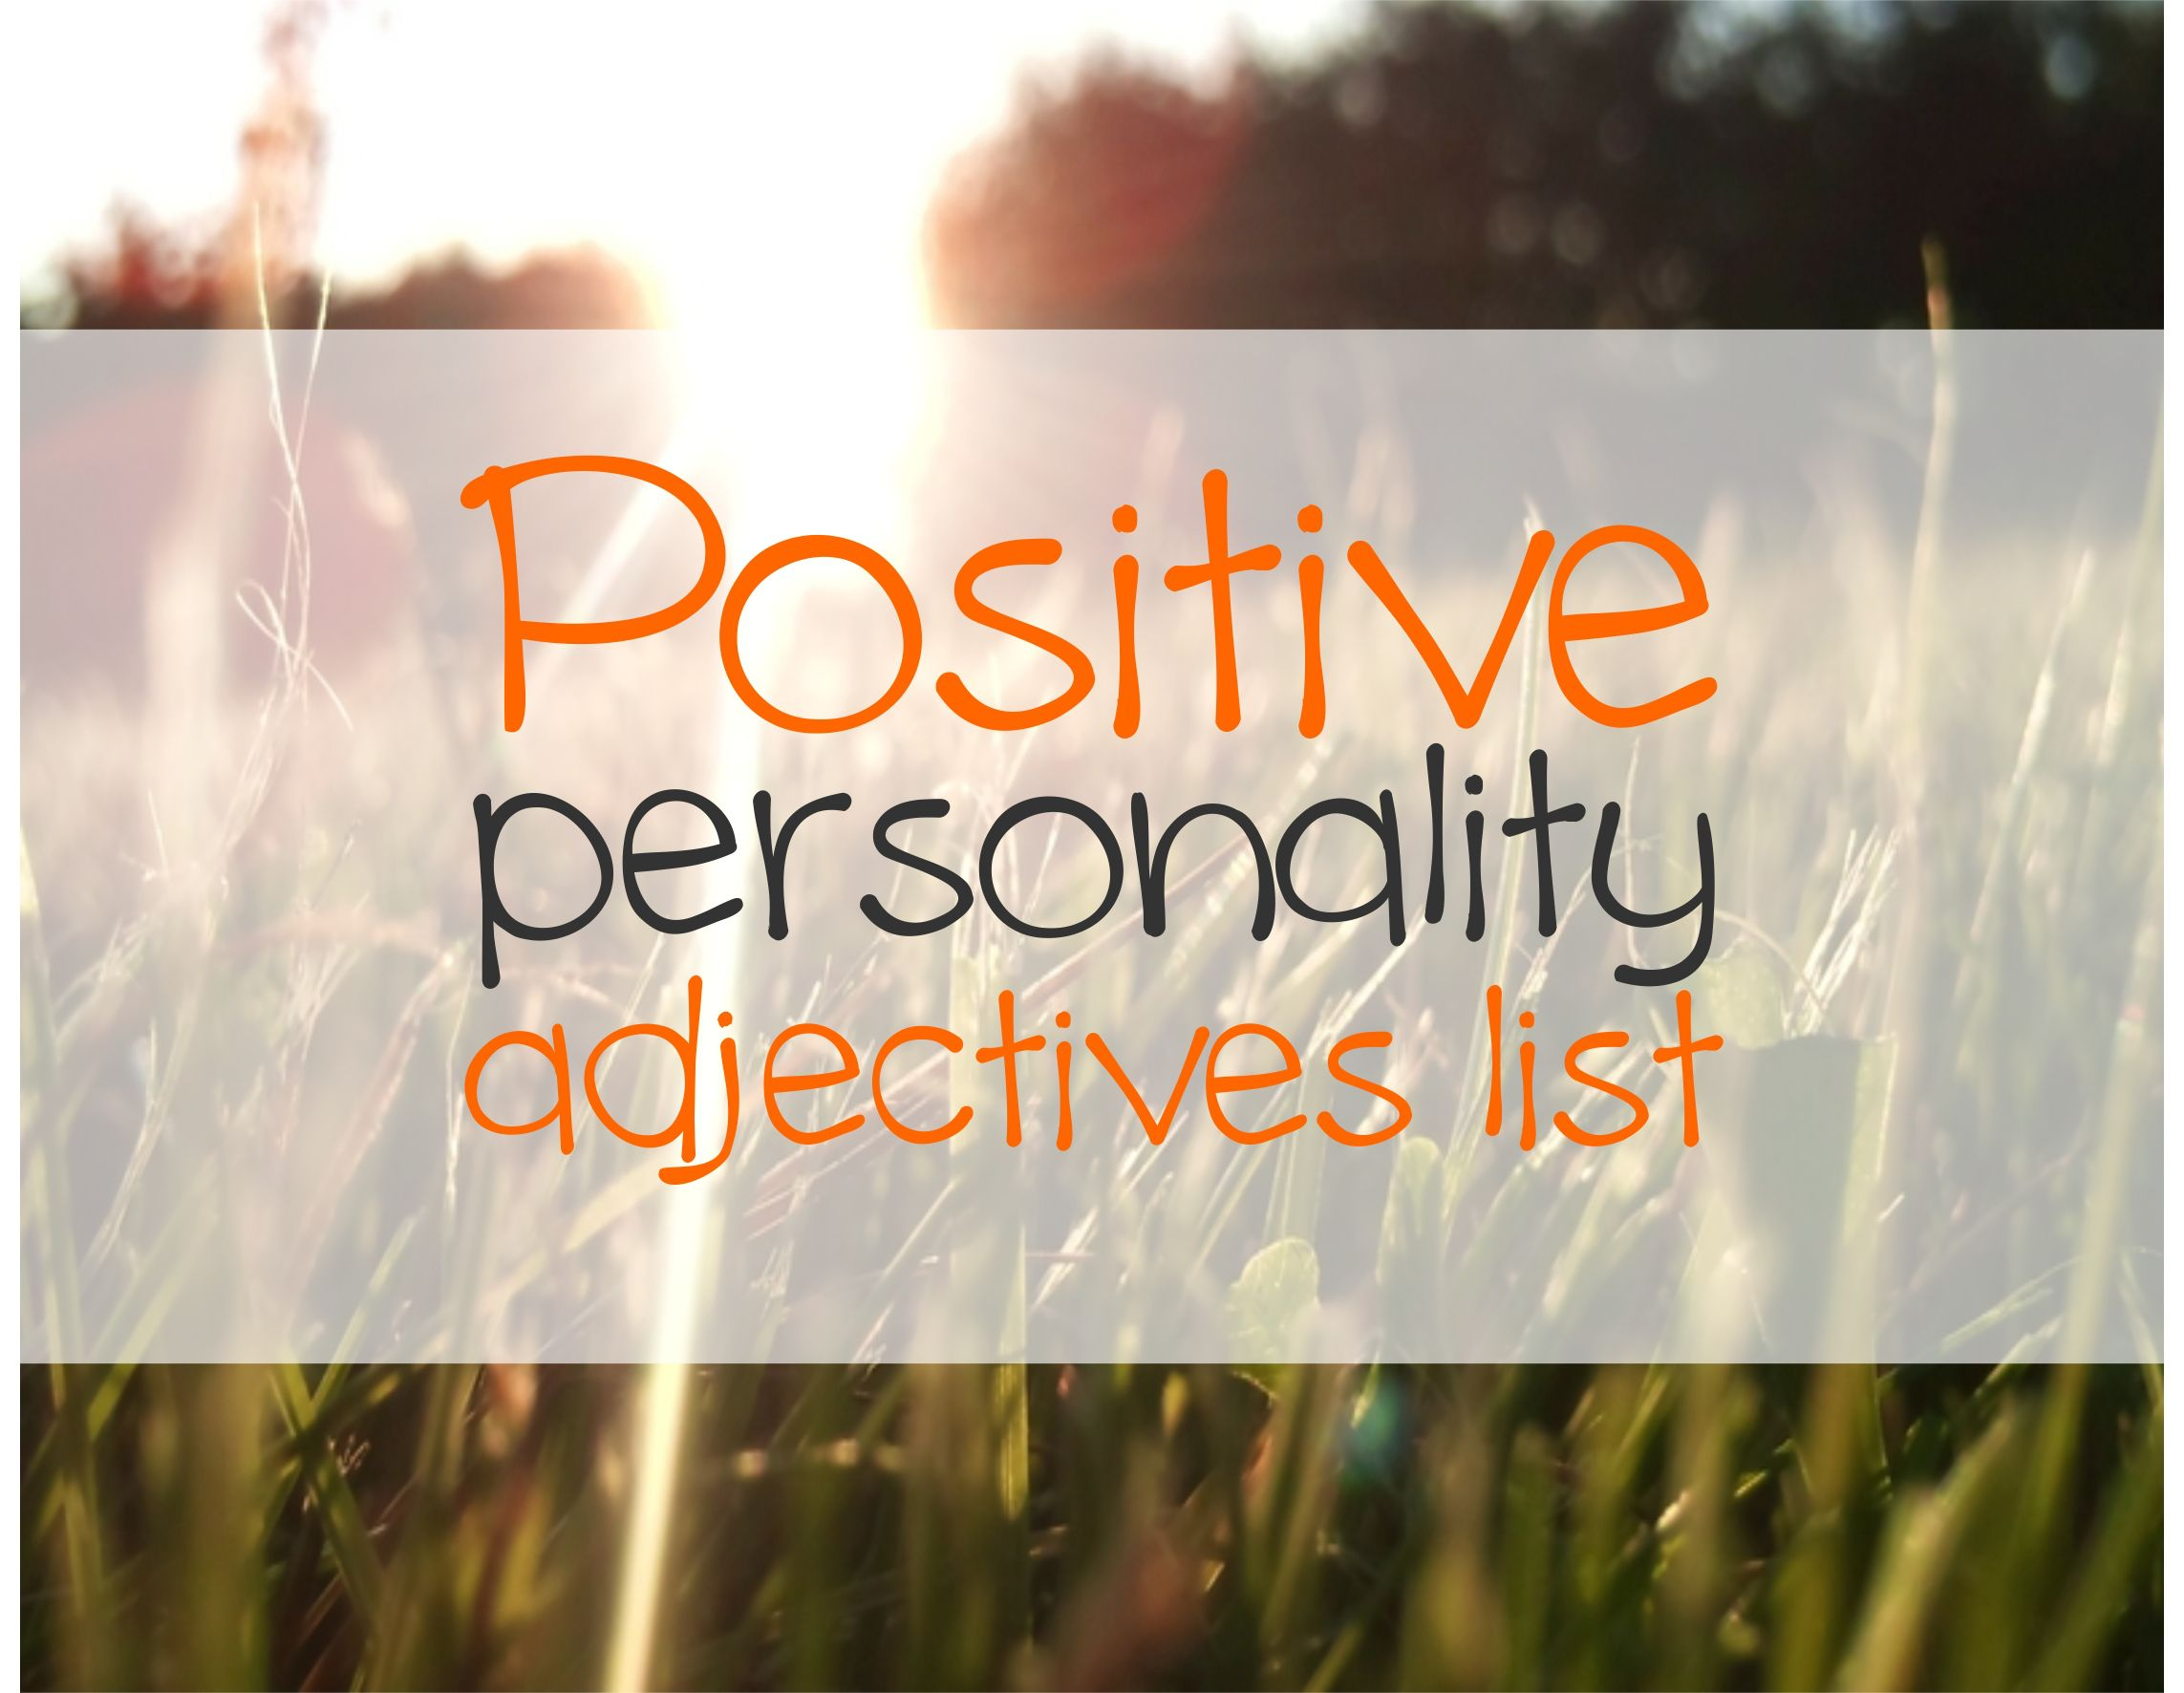 list of 100 common personality adjectives that describe people positively you may use them for